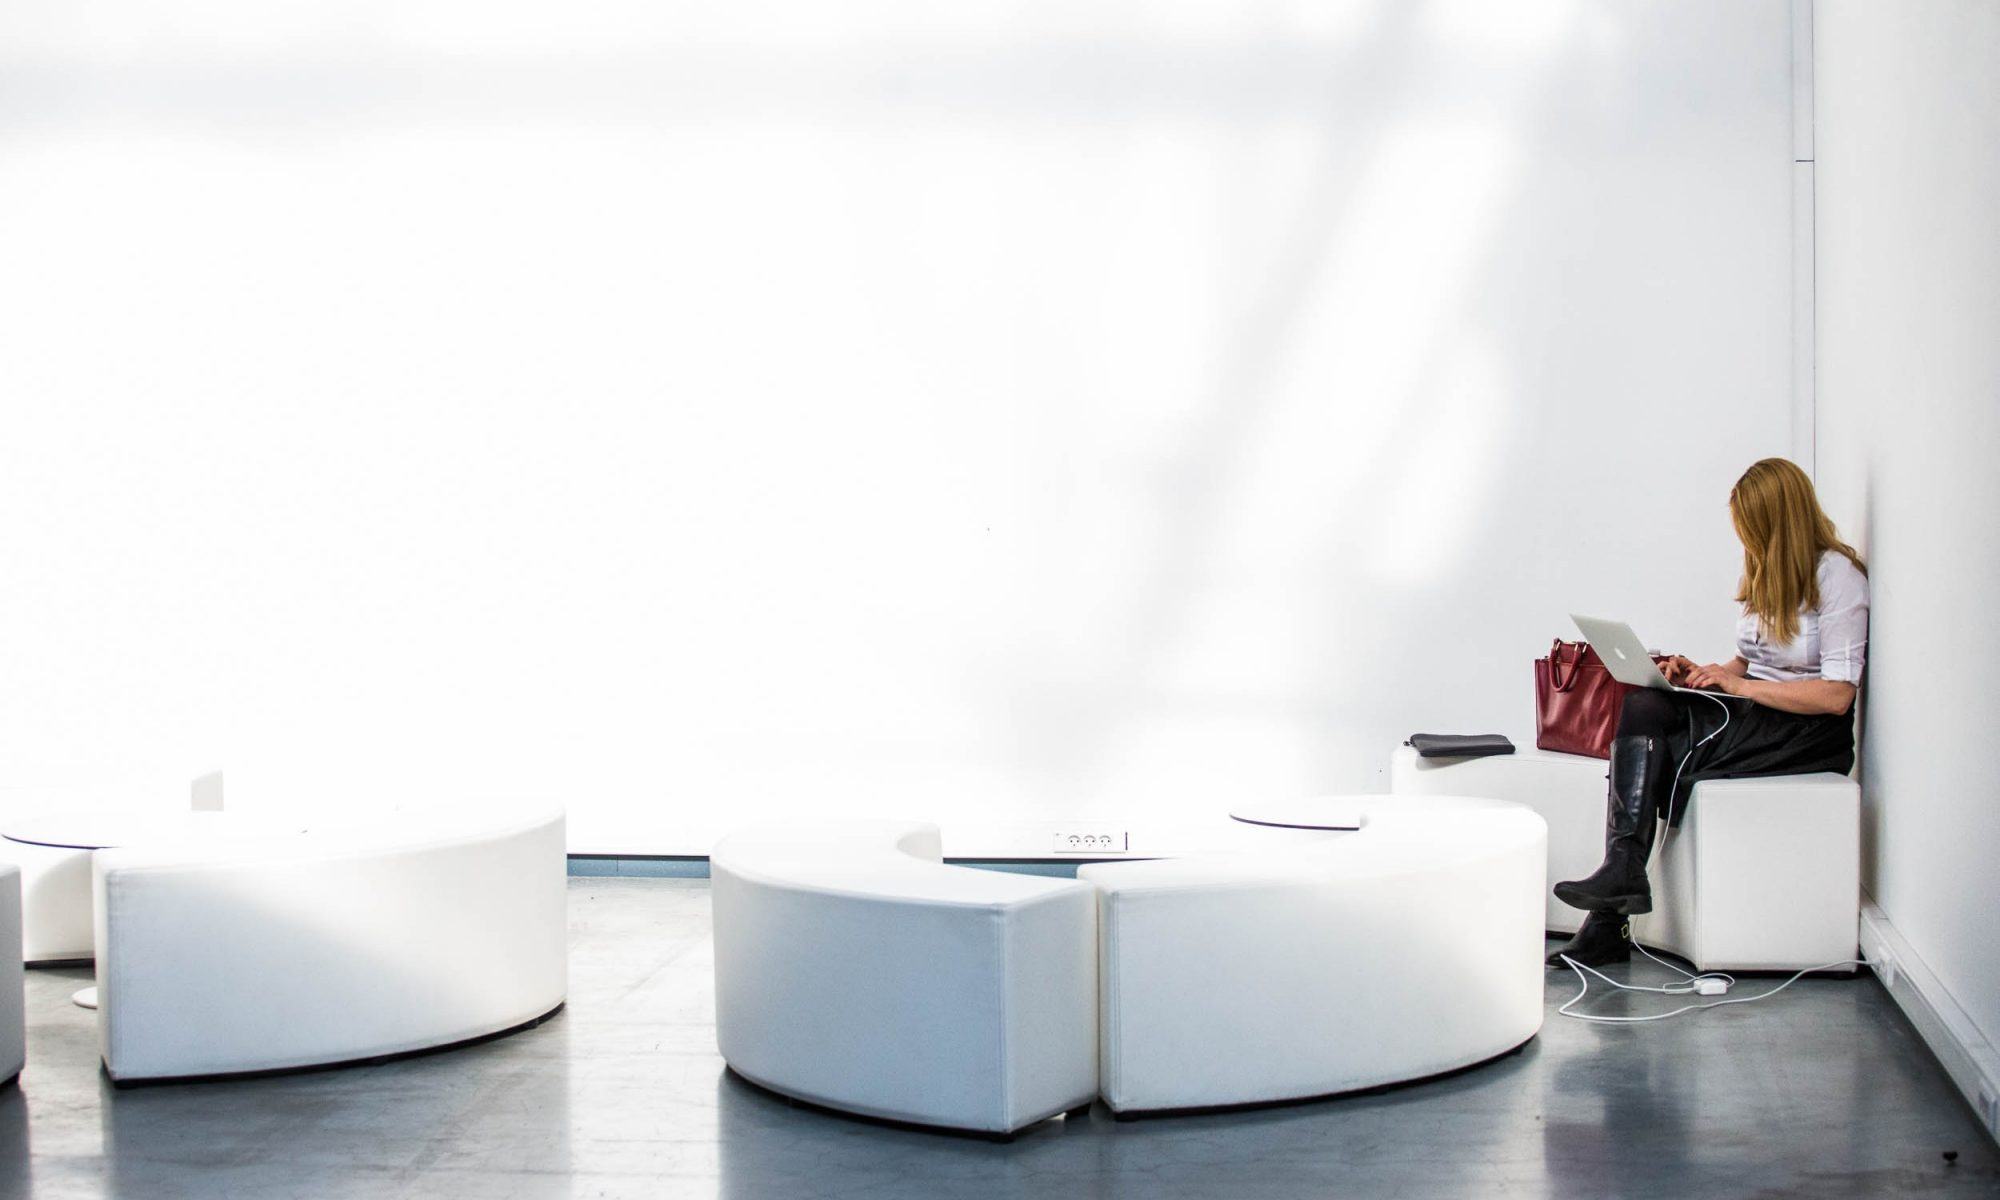 A woman works on a laptop in the corner of a pristine white office foyer